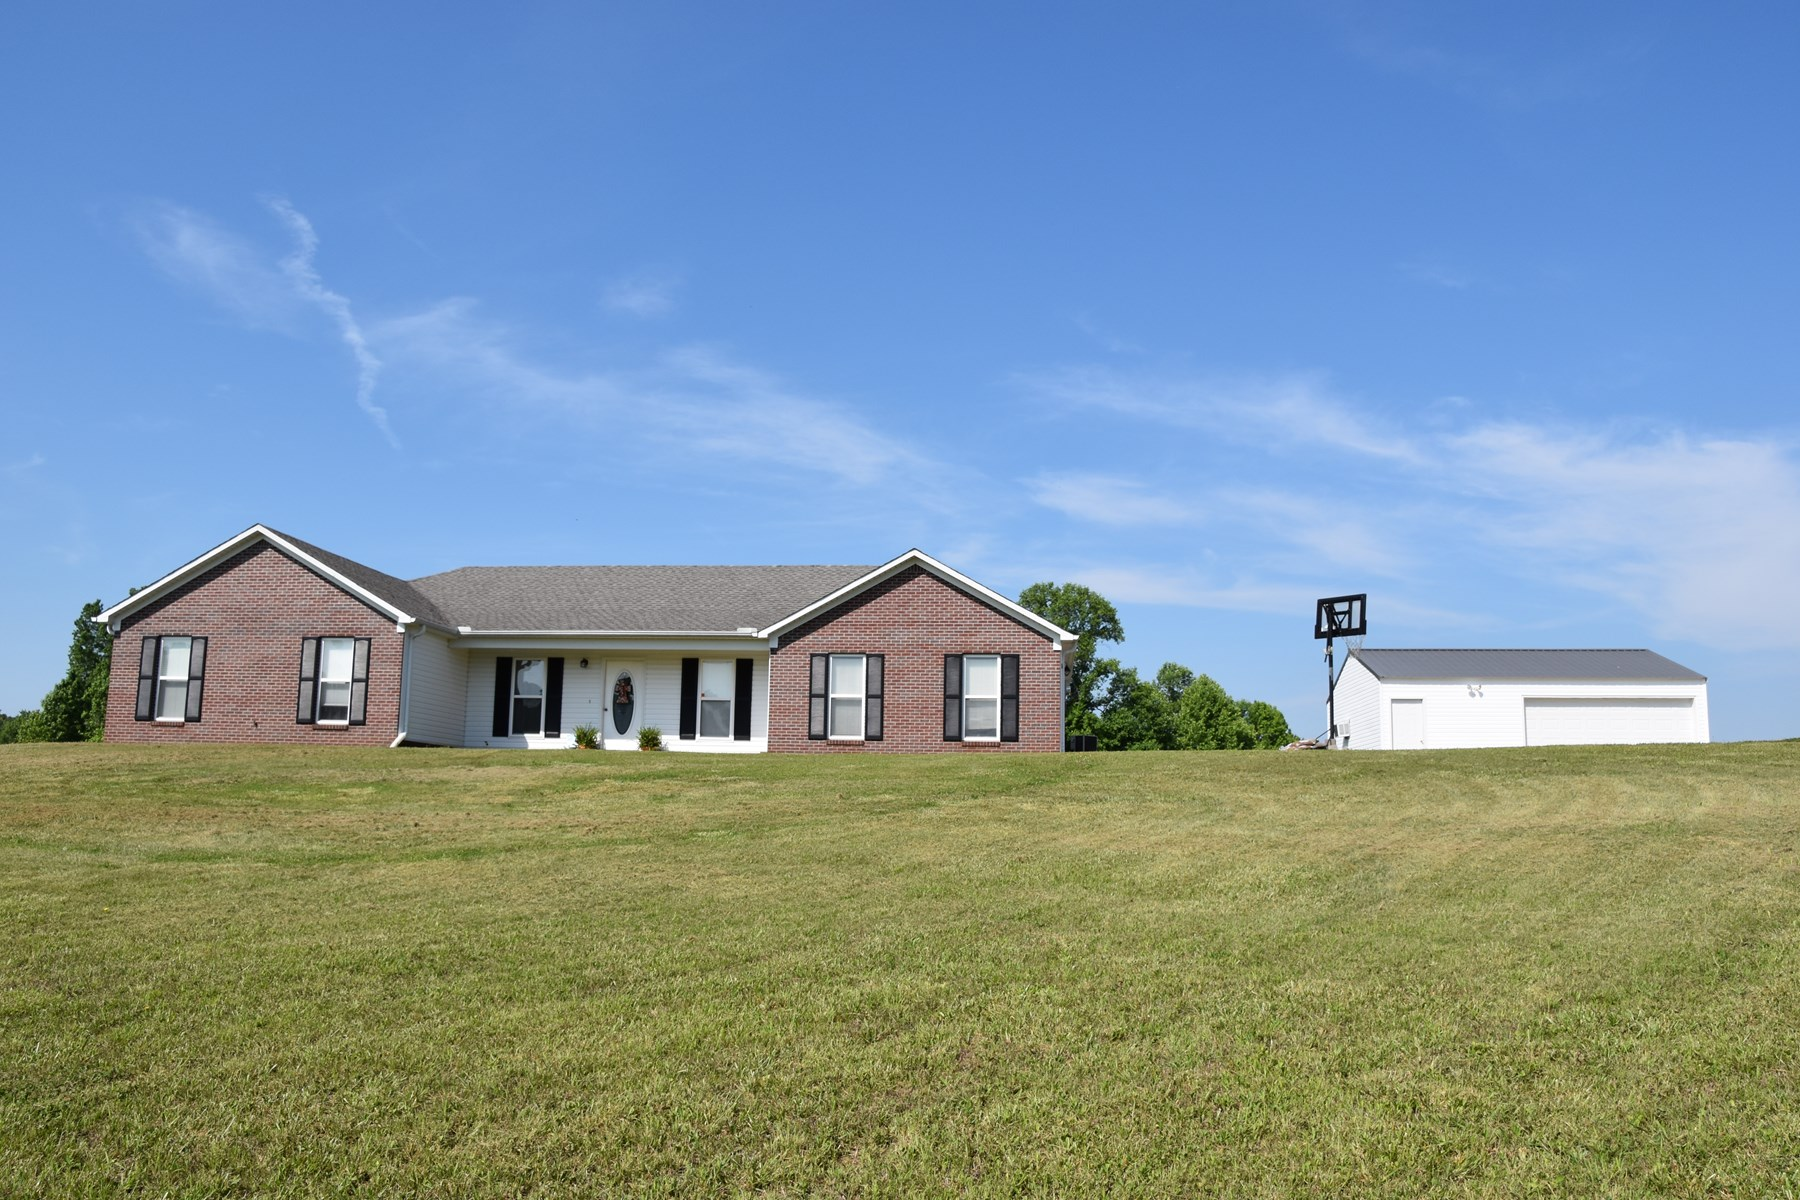 Henderson Co TN home for sale on acreage with Shop & Deck!